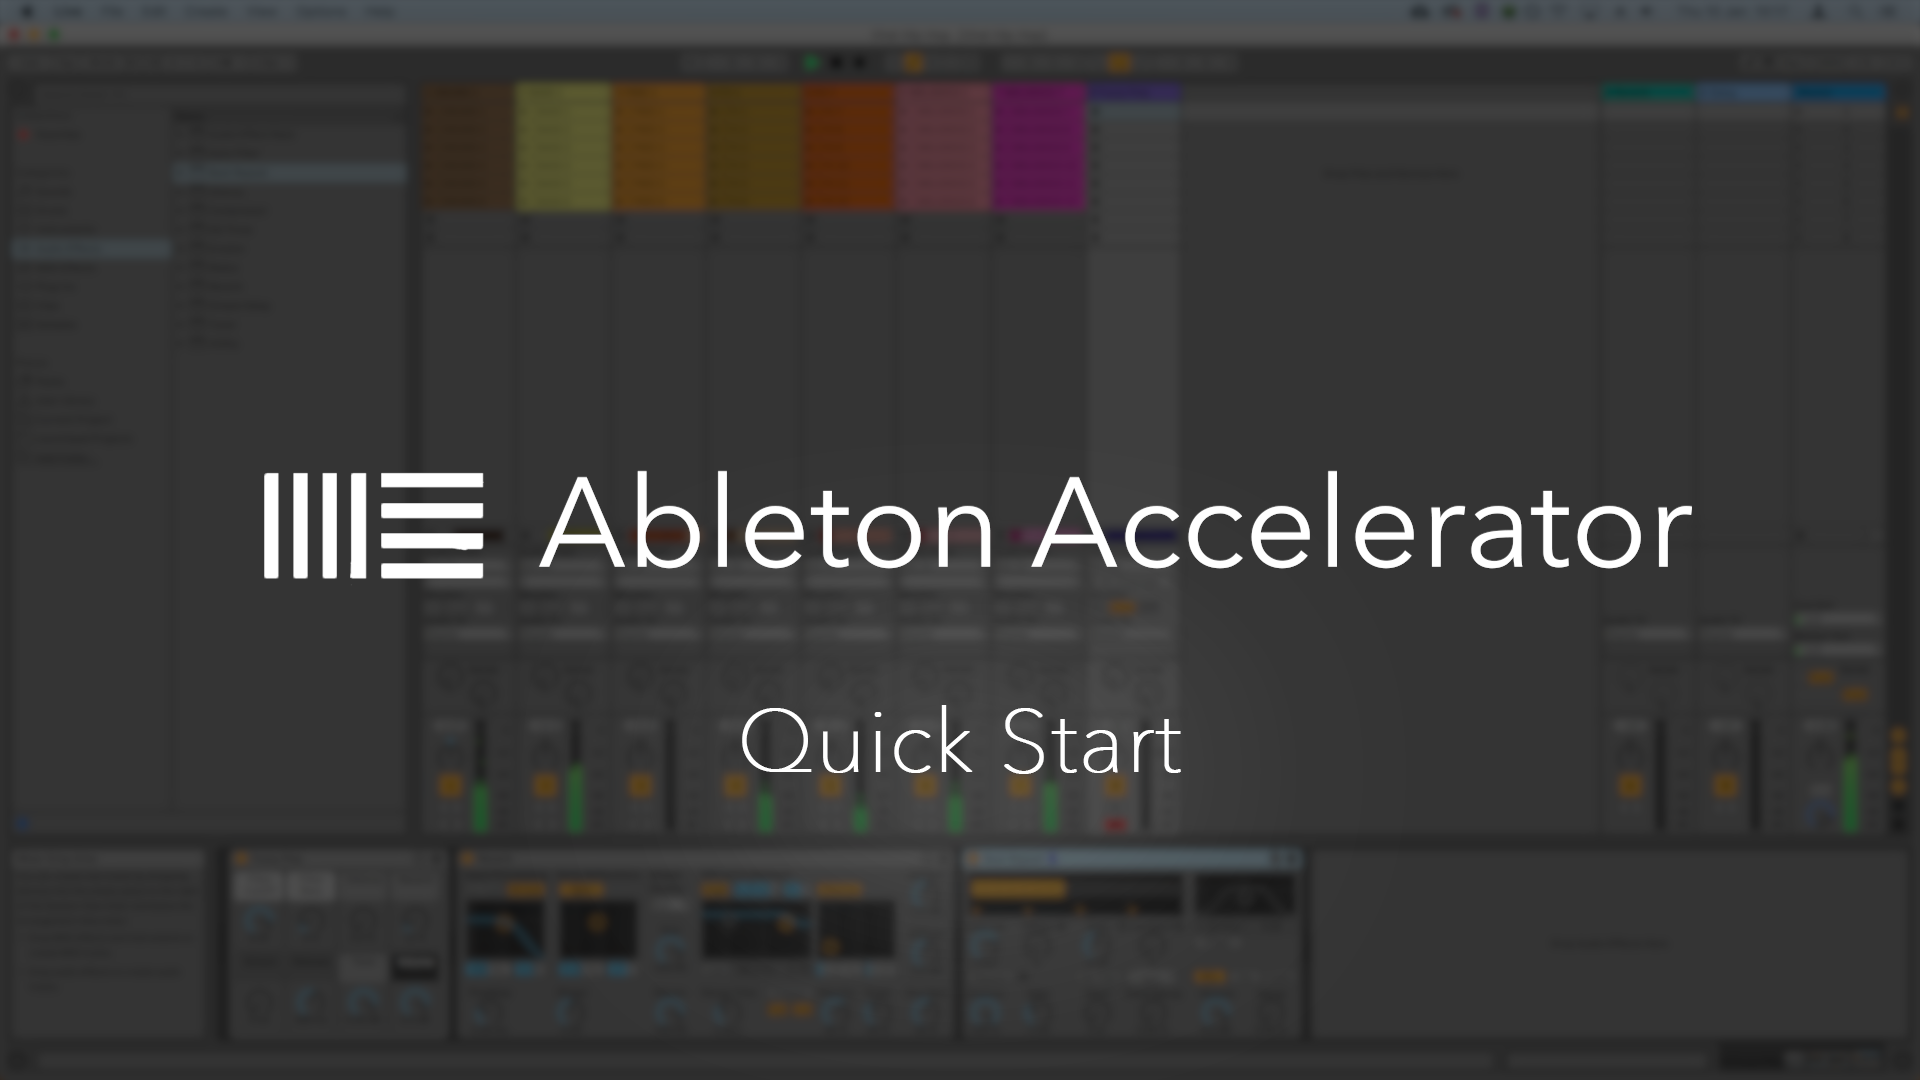 Ableton Accelerator Quick Start